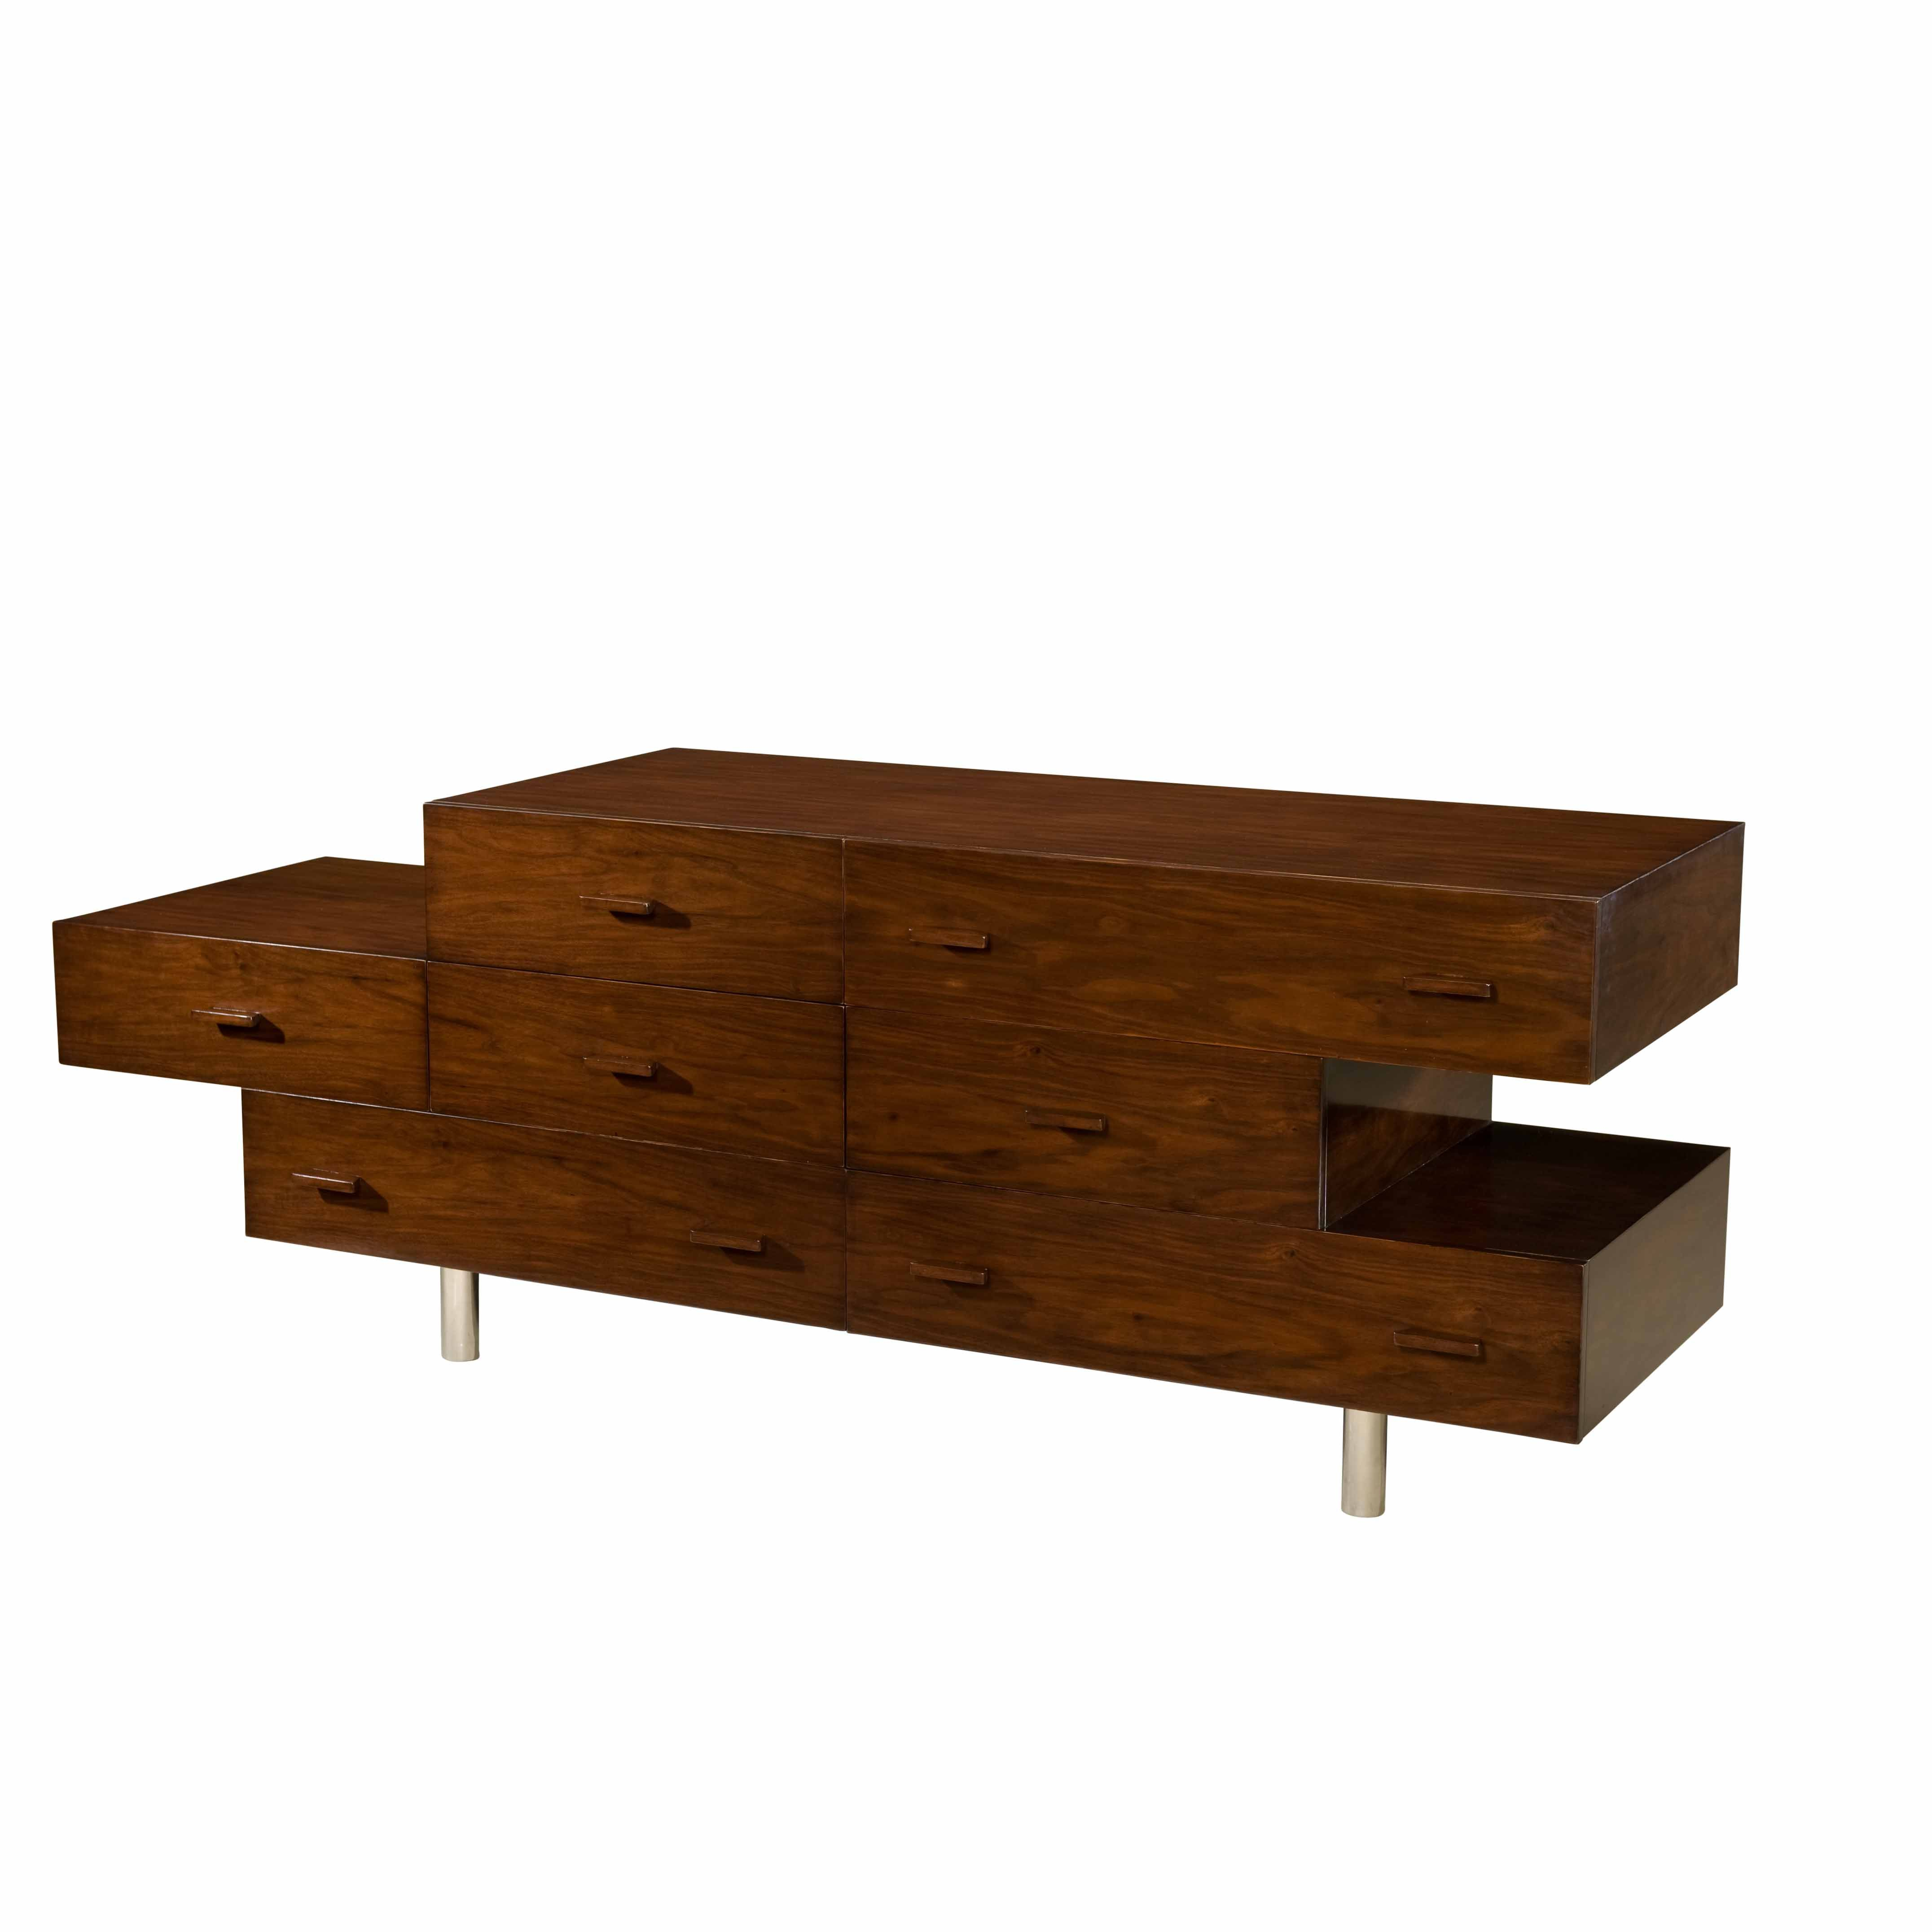 Ej Victor The Allison Paladino Laurelle Media Cabinet Is Constructed Of Walnut And Has Stainless Steel Le Large Furniture Furniture Decor